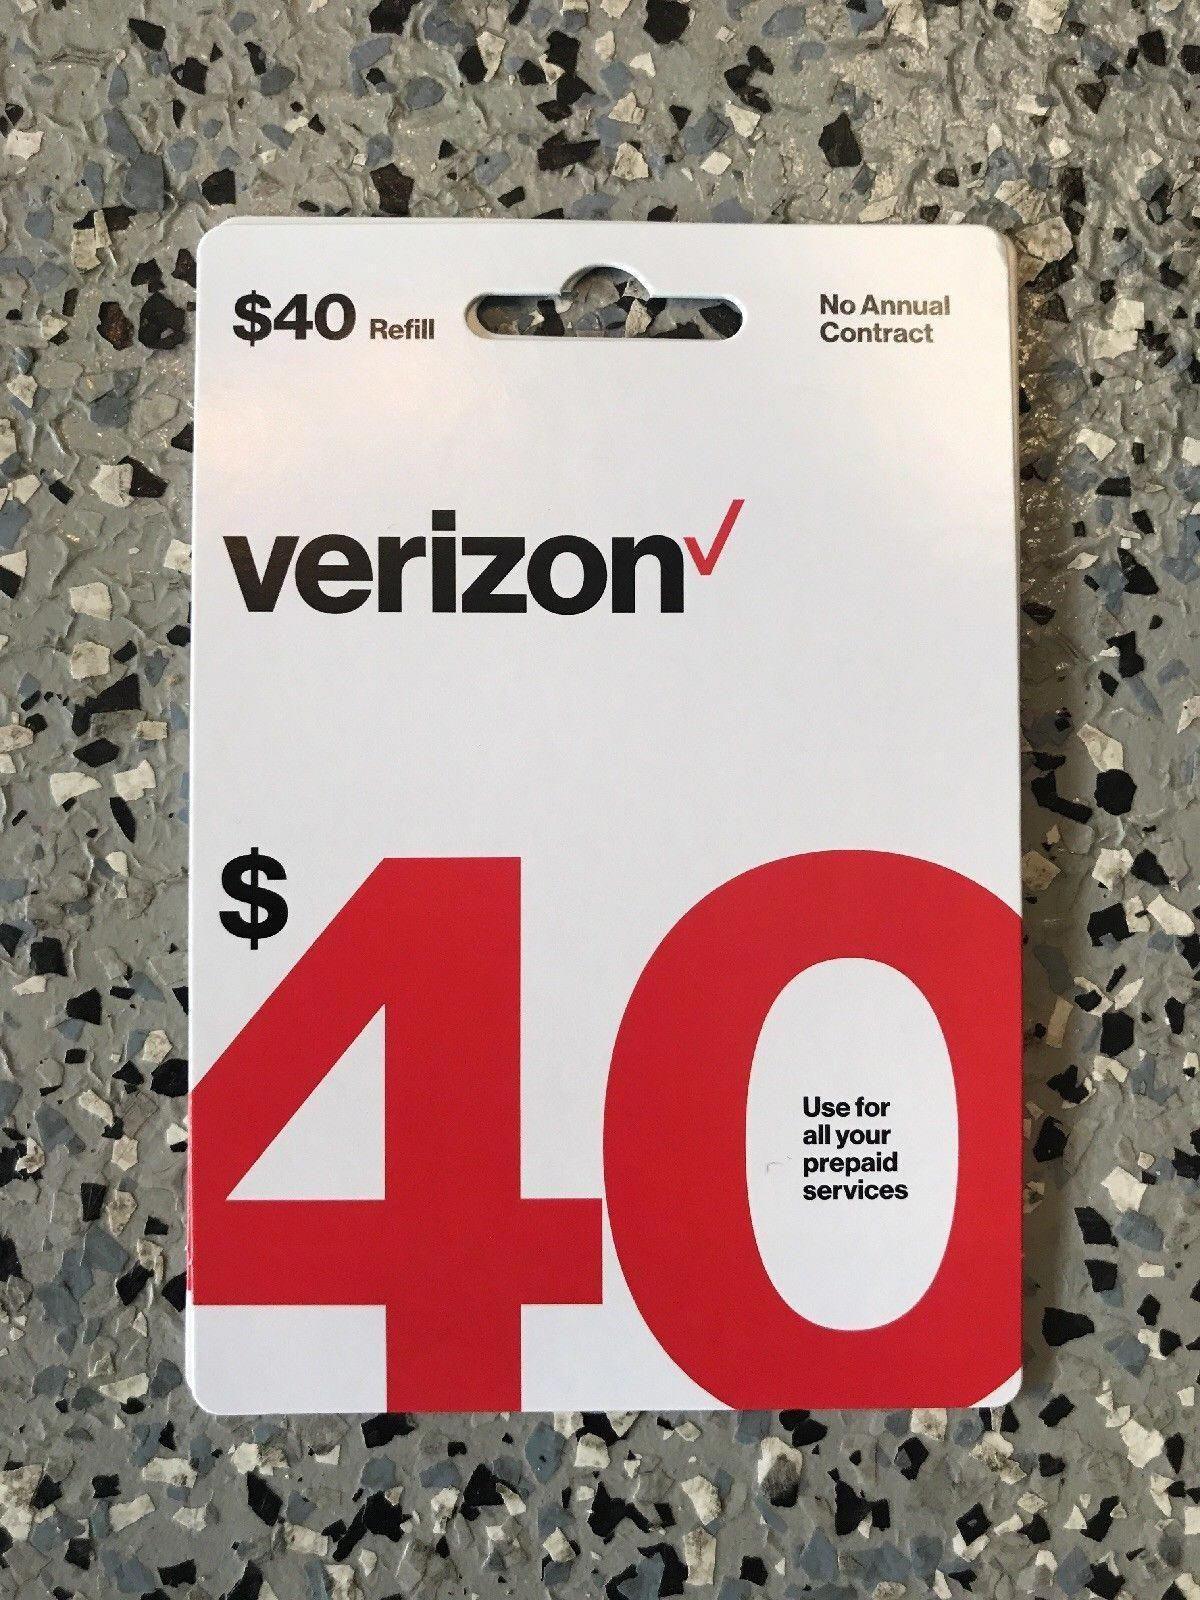 Prepaid Phones With Minutes Included 1 Year Prepaid Phone With Minutes Included Cellphoneaccessories Cellphoneguys Prepaidphones Prepaid Phones Verizon Wireless Cards